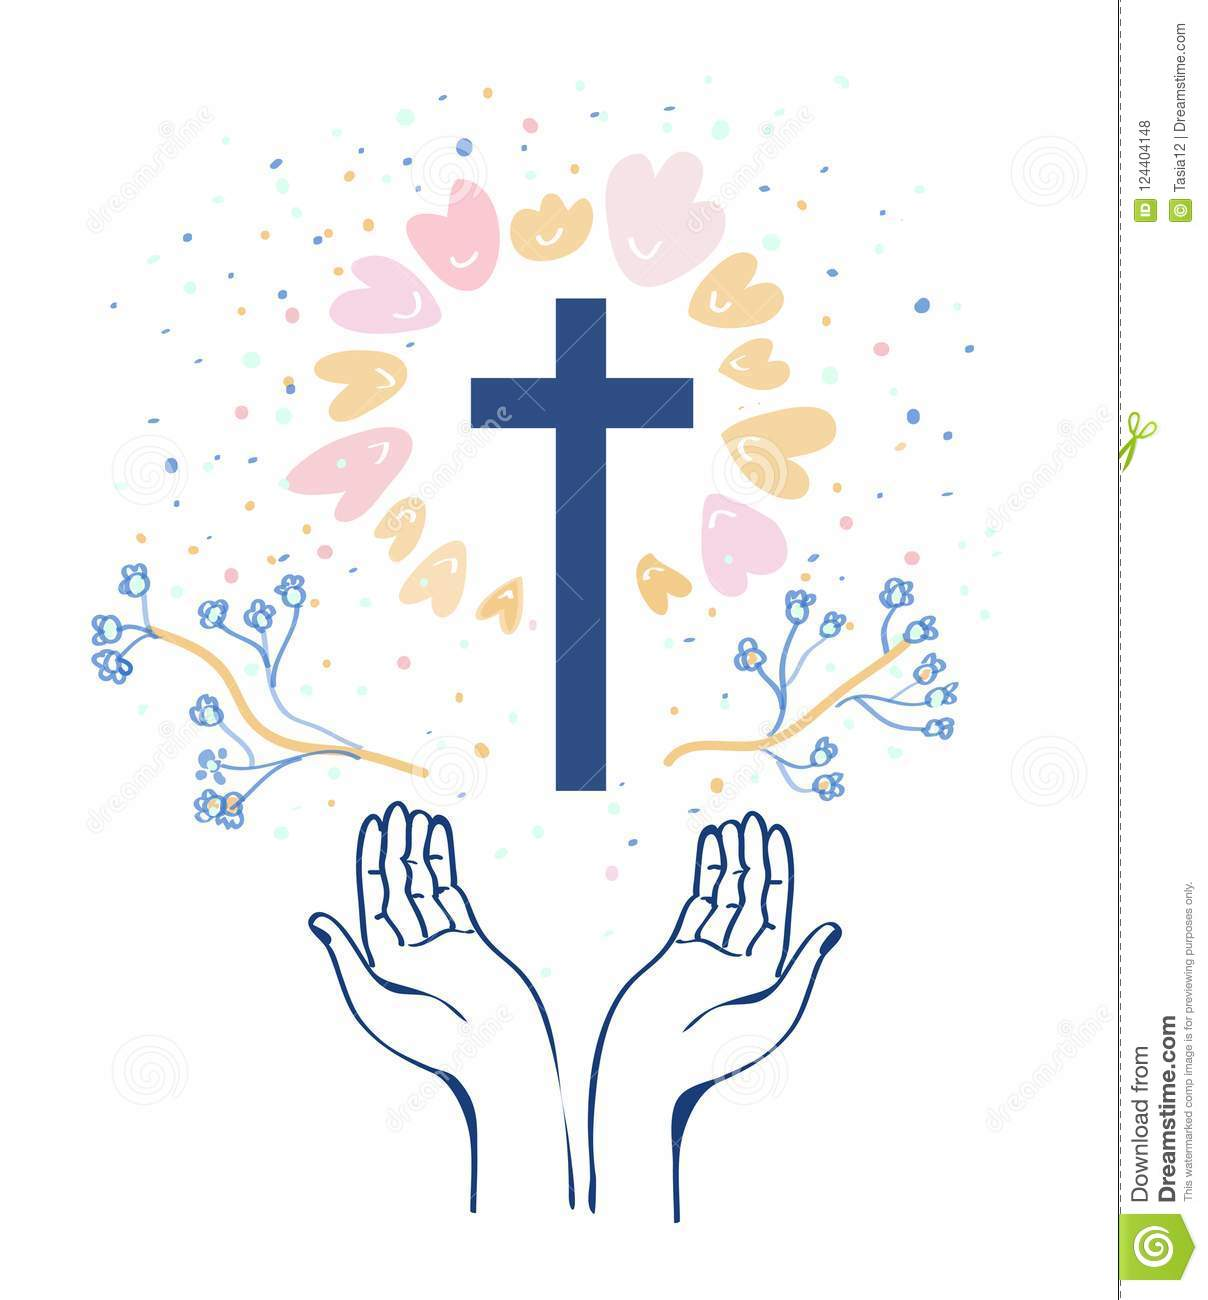 Christianity religion background with hands or prayer and cross, flowers around. Vector illustration